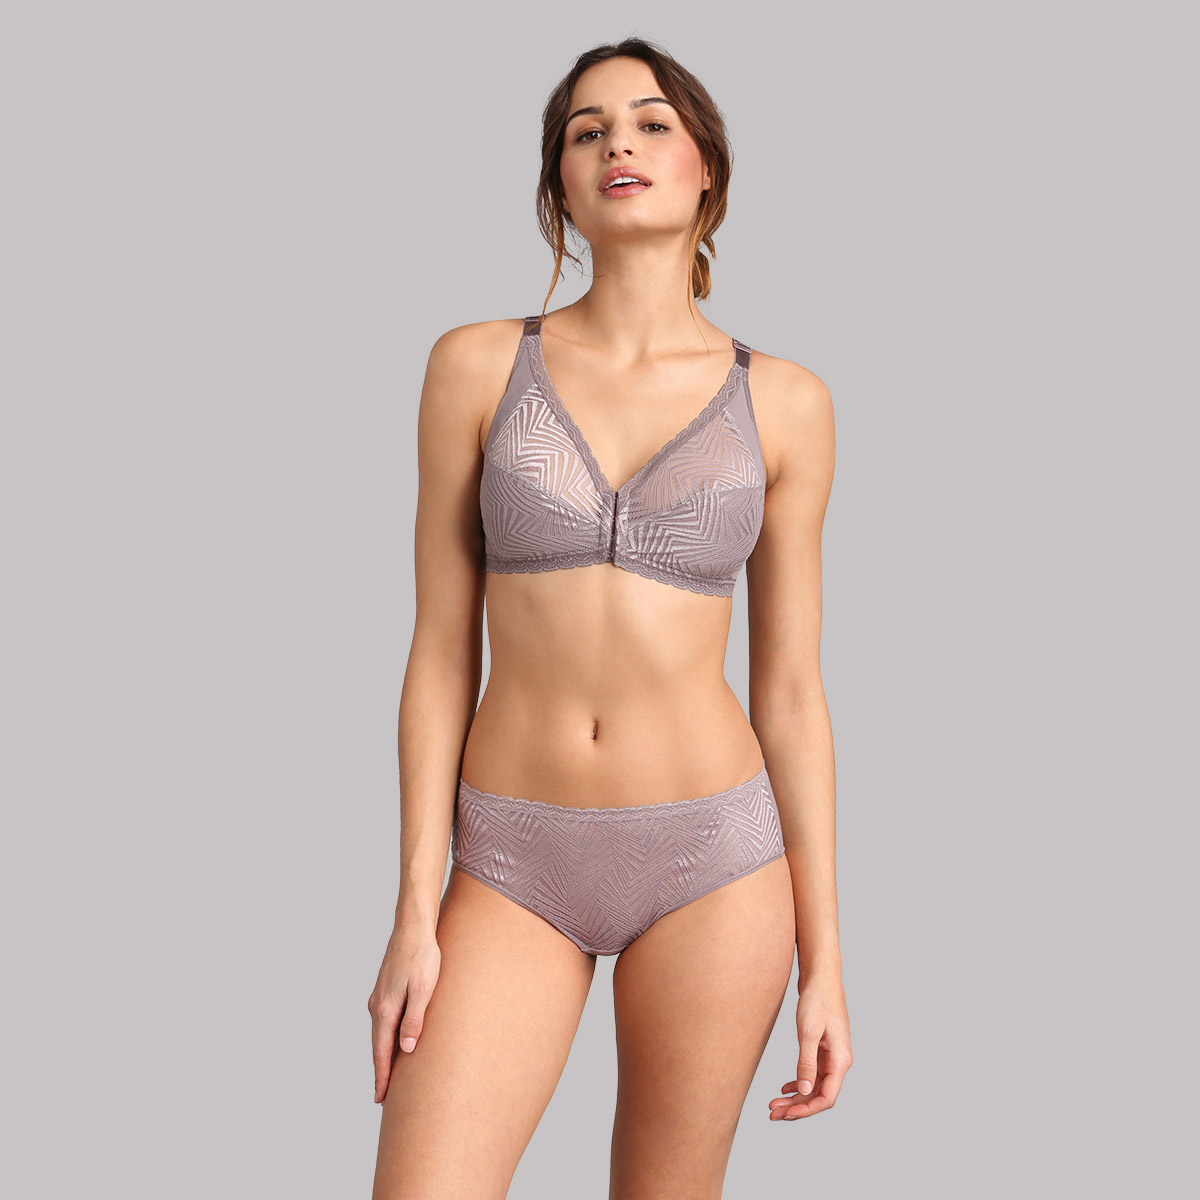 Braga de encaje midi color topo Ideal Posture, , PLAYTEX